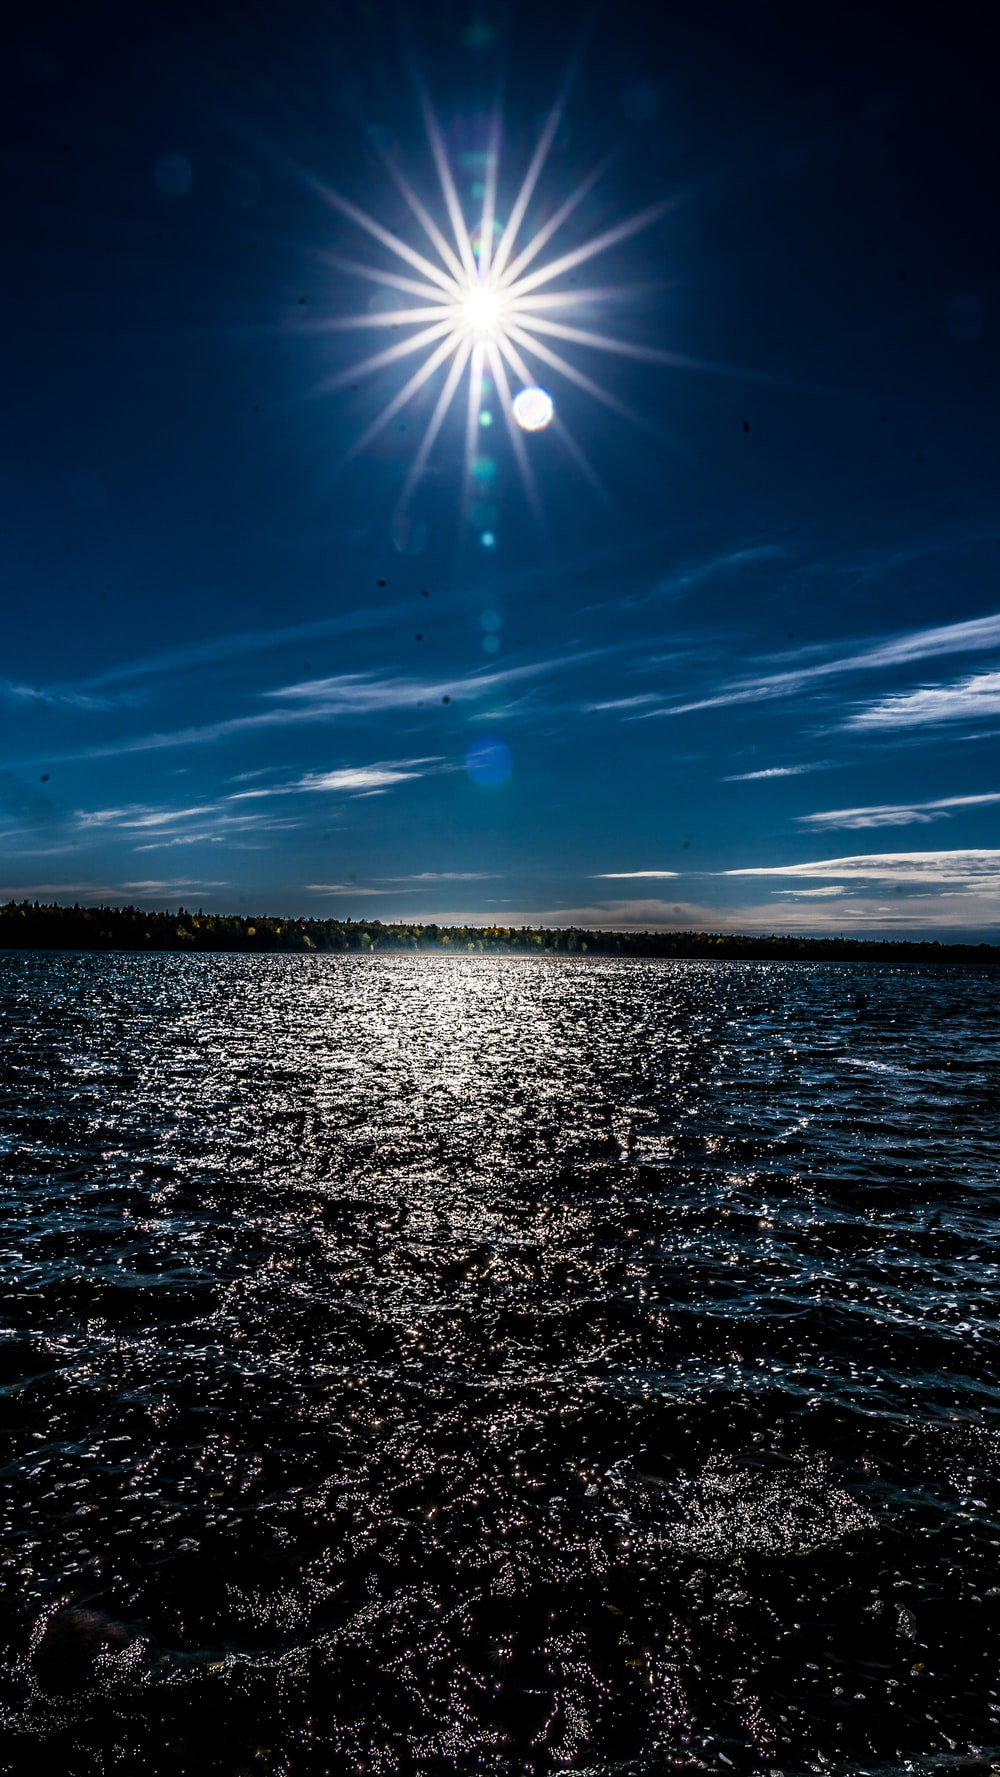 body of water under blue sky during daytime